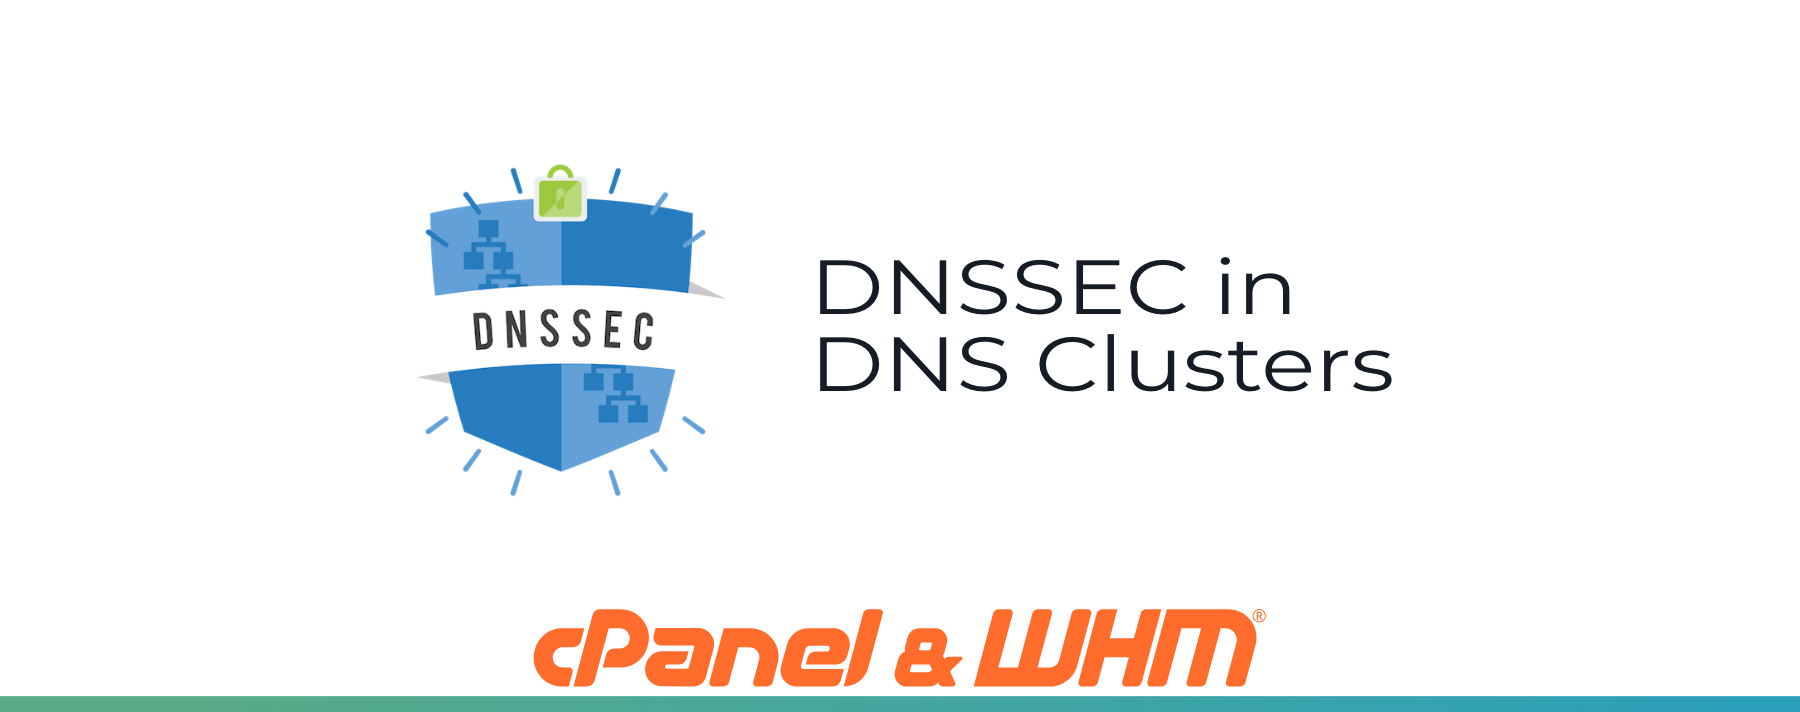 DNSSEC in DNS Clusters - cPanel & WHM